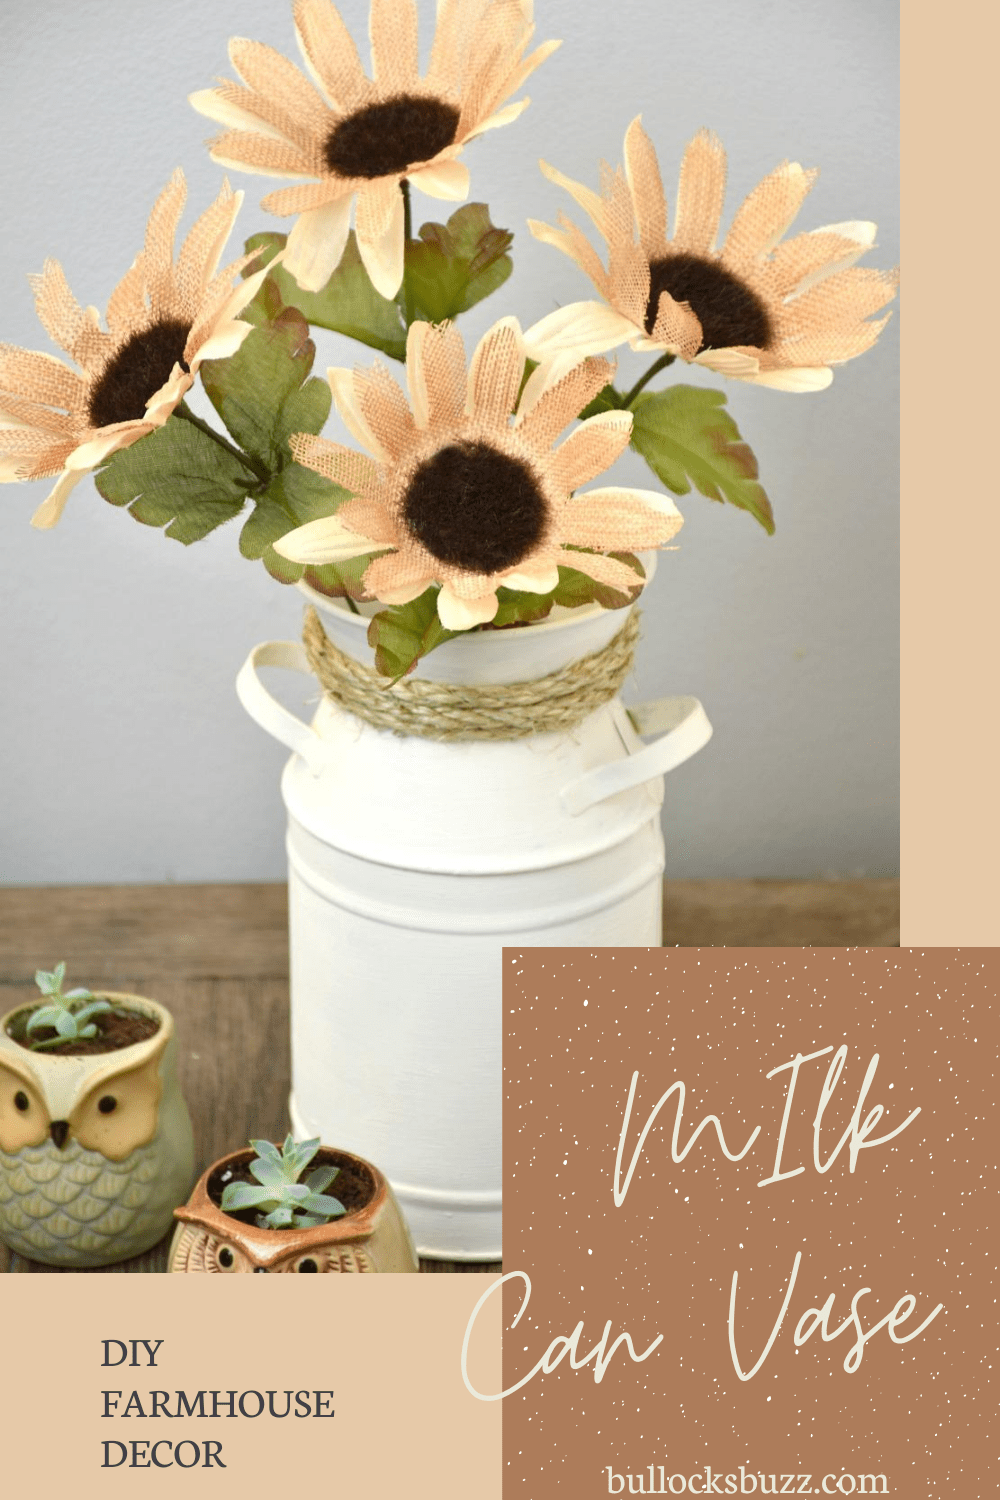 Bring rustic charm to your table with this beautiful piece of DIY farmhouse decor. You can make this simple DIY Milk Can Vase Centerpiece in minutes using nothing more than a galvanized milk can, some paint, a bit of rope, and a few faux flowers.